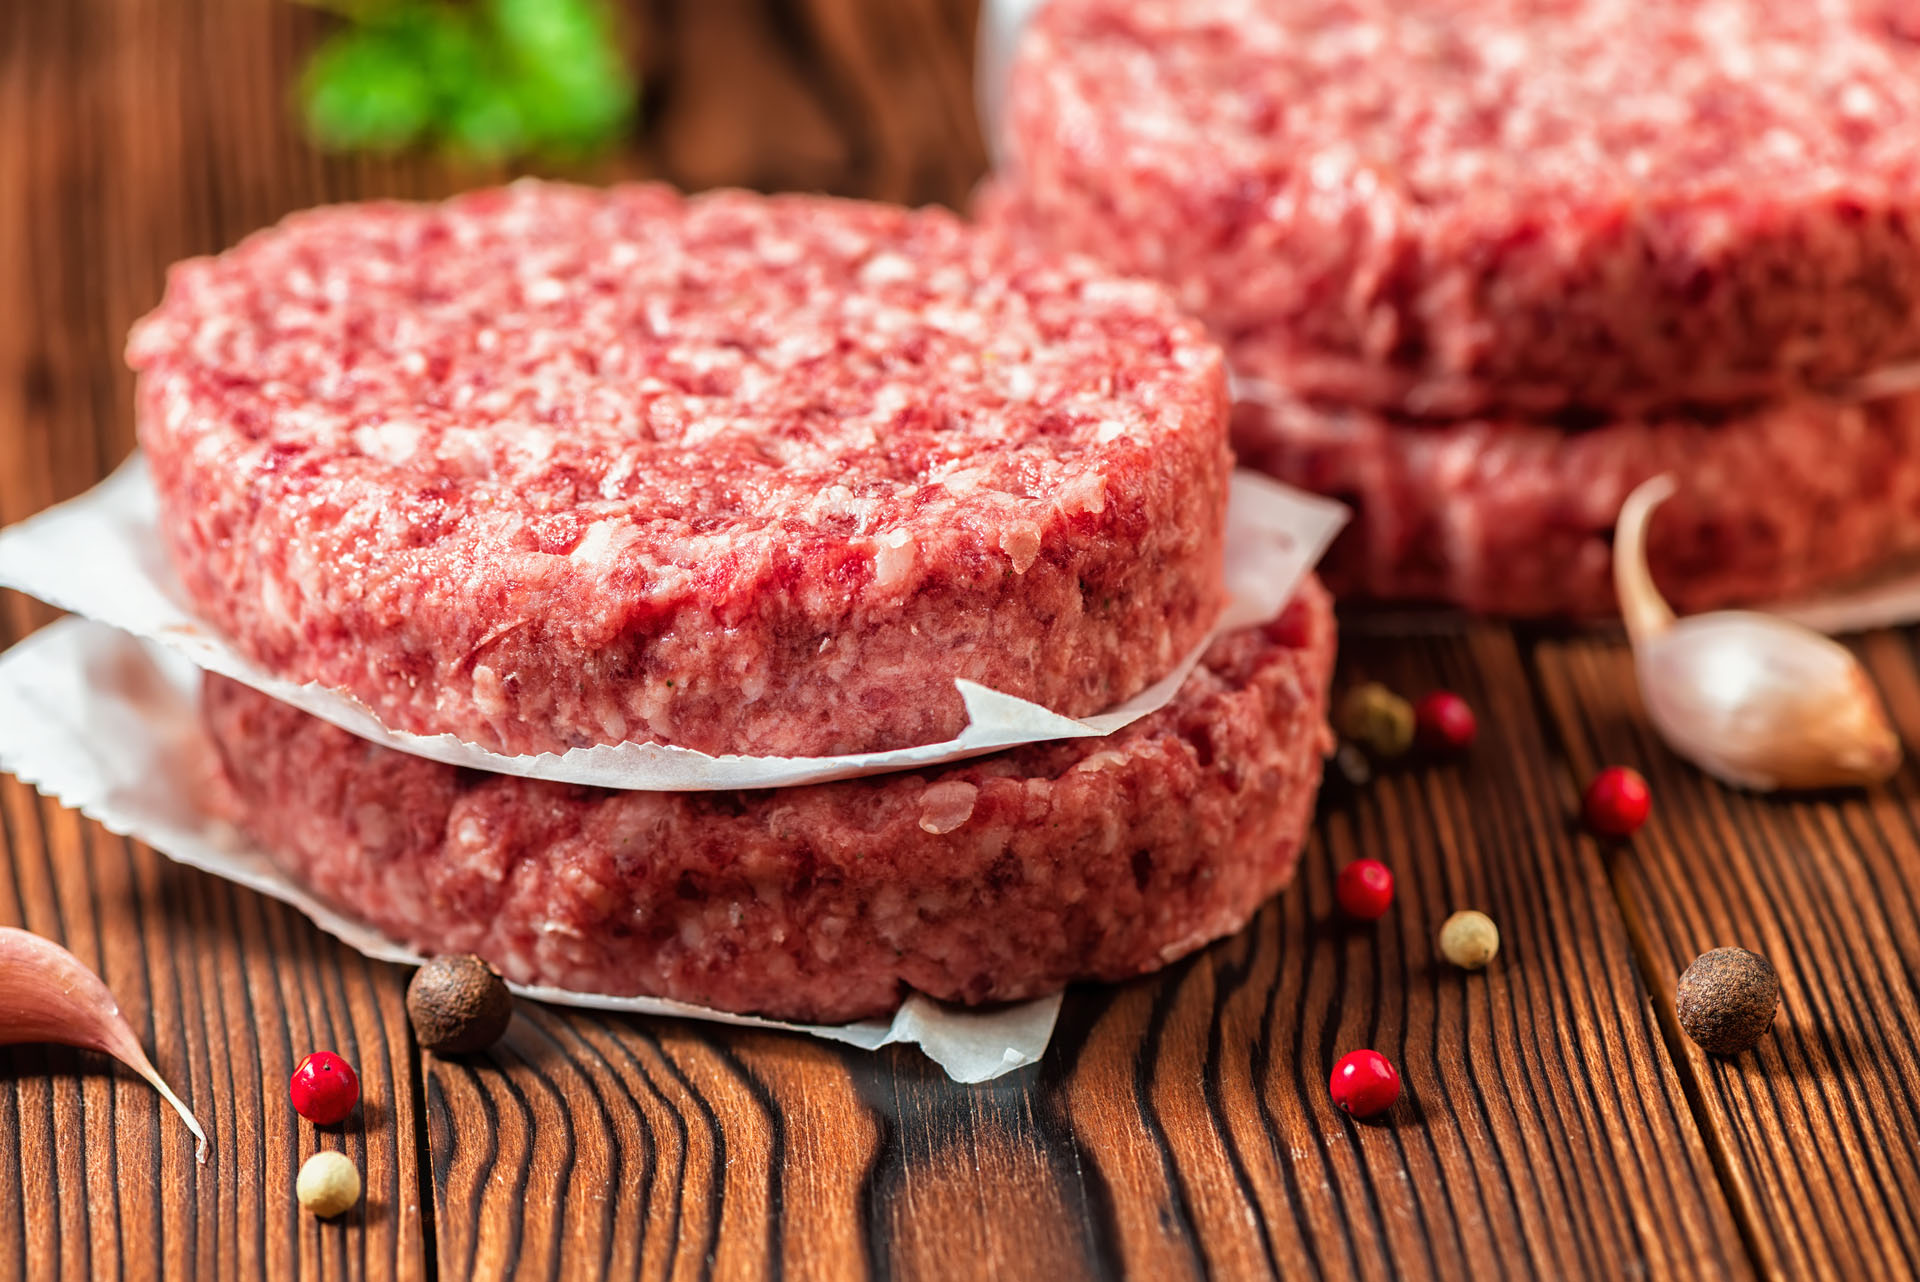 Raw Beef Meat generic stock